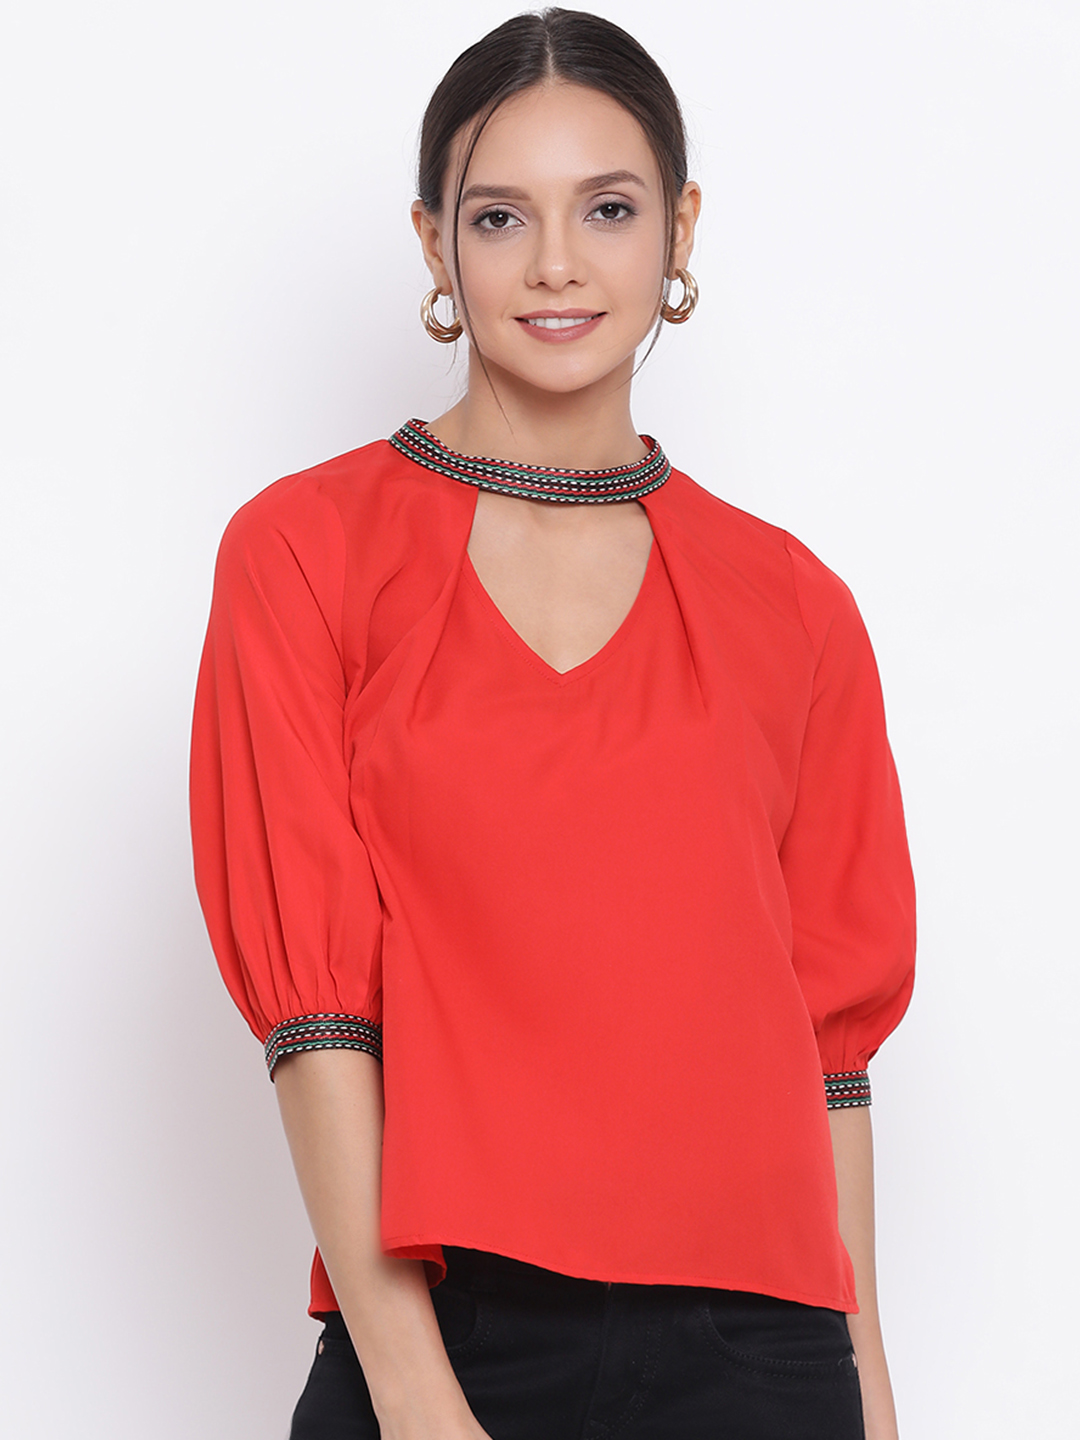 DRAAX fashions | DRAAX FASHIONS Women Red Solid Shimmery Top